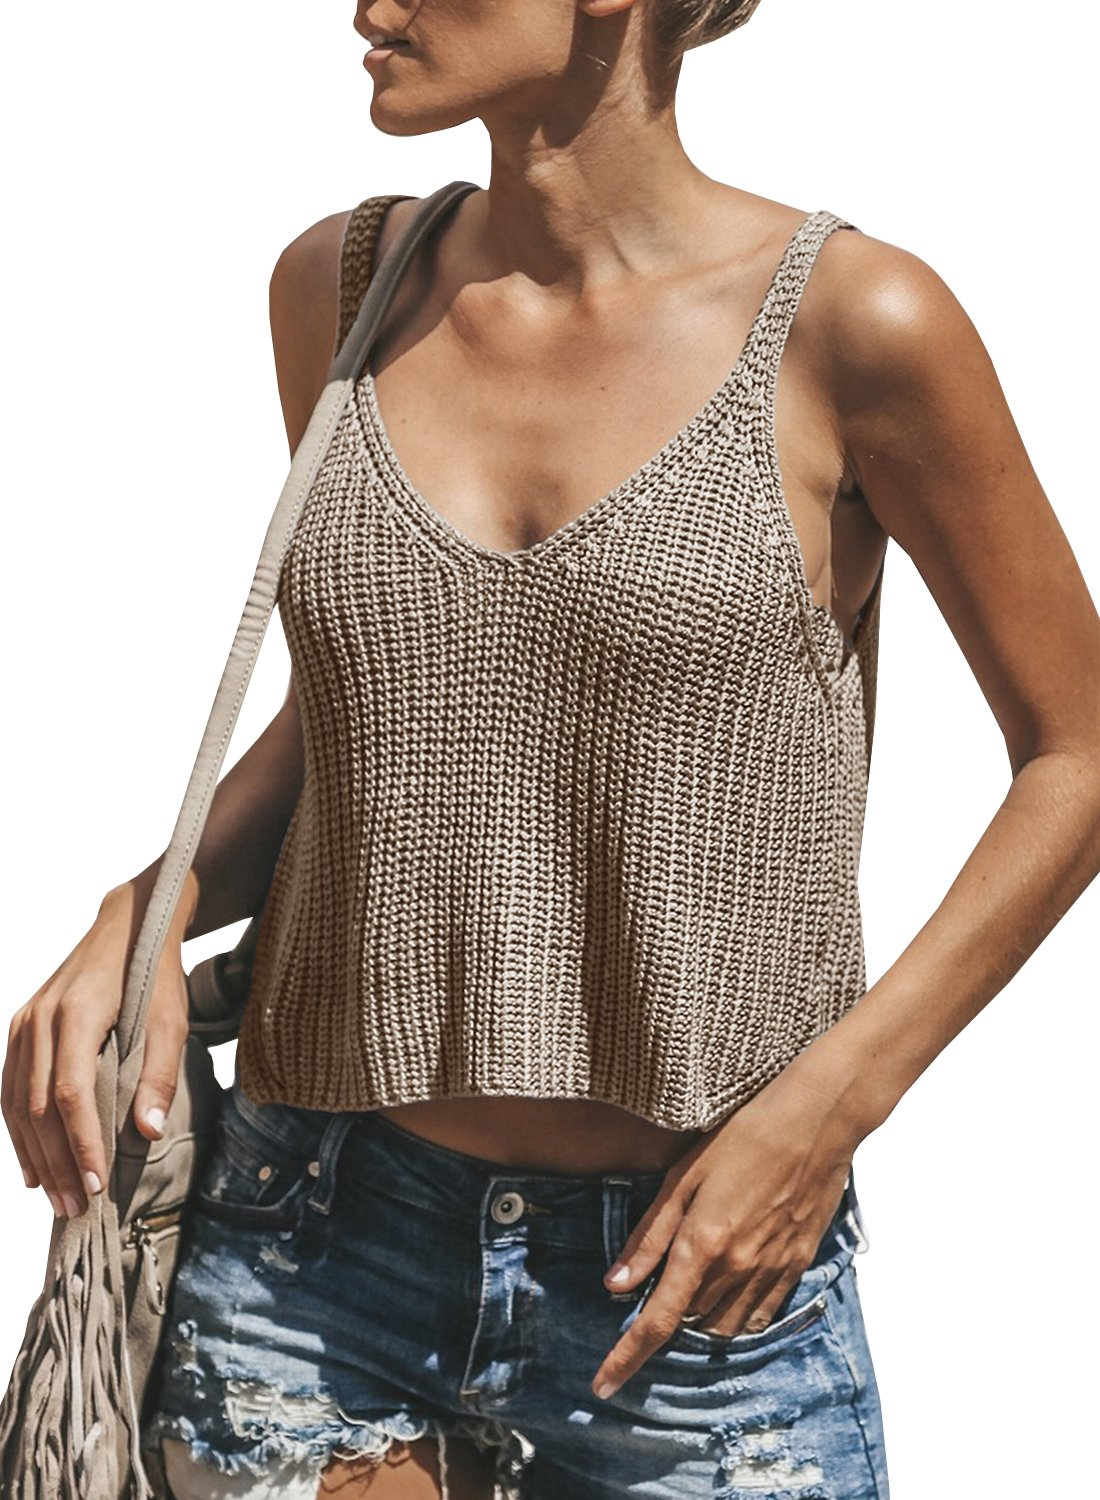 Dellytop Womens V Neck Sleeveless Sweater Spaghetti Strap Knit Tank Tops Crop Vest